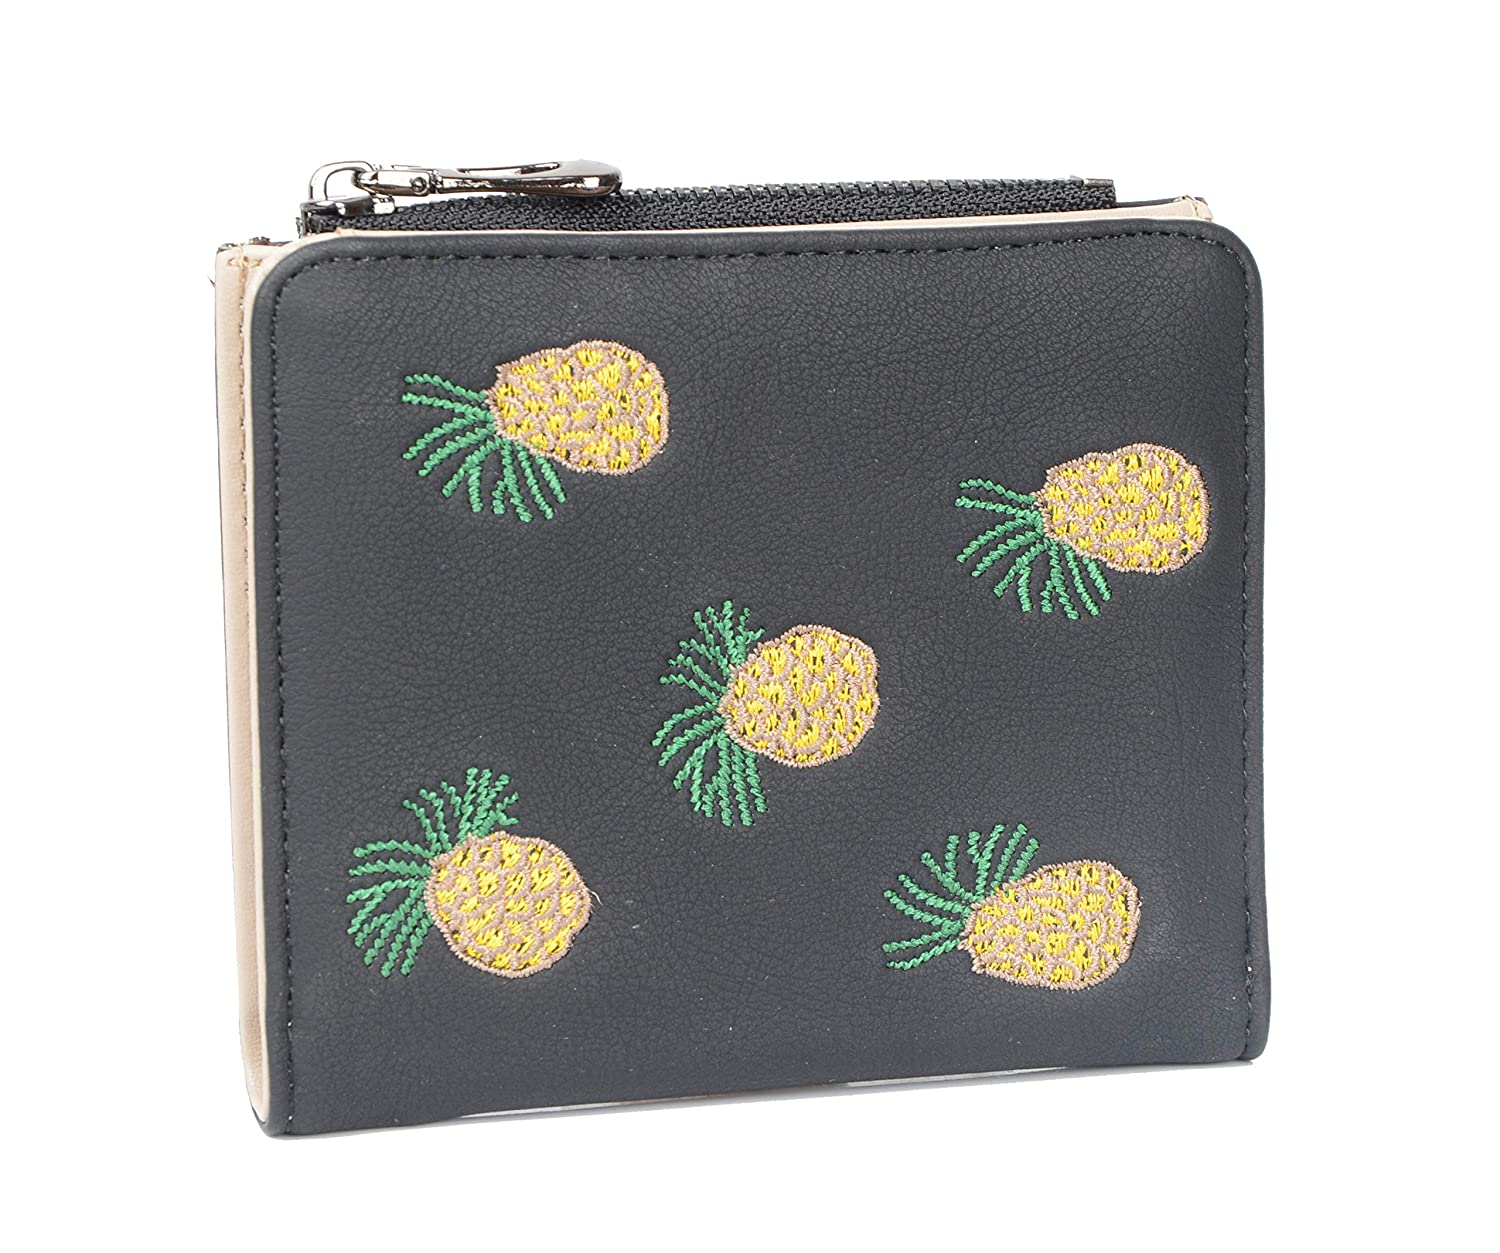 Pineapple Black Nawoshow Women Cute Small Wallet Cherry Pattern Coin Purse Card Holder Clutch Bag